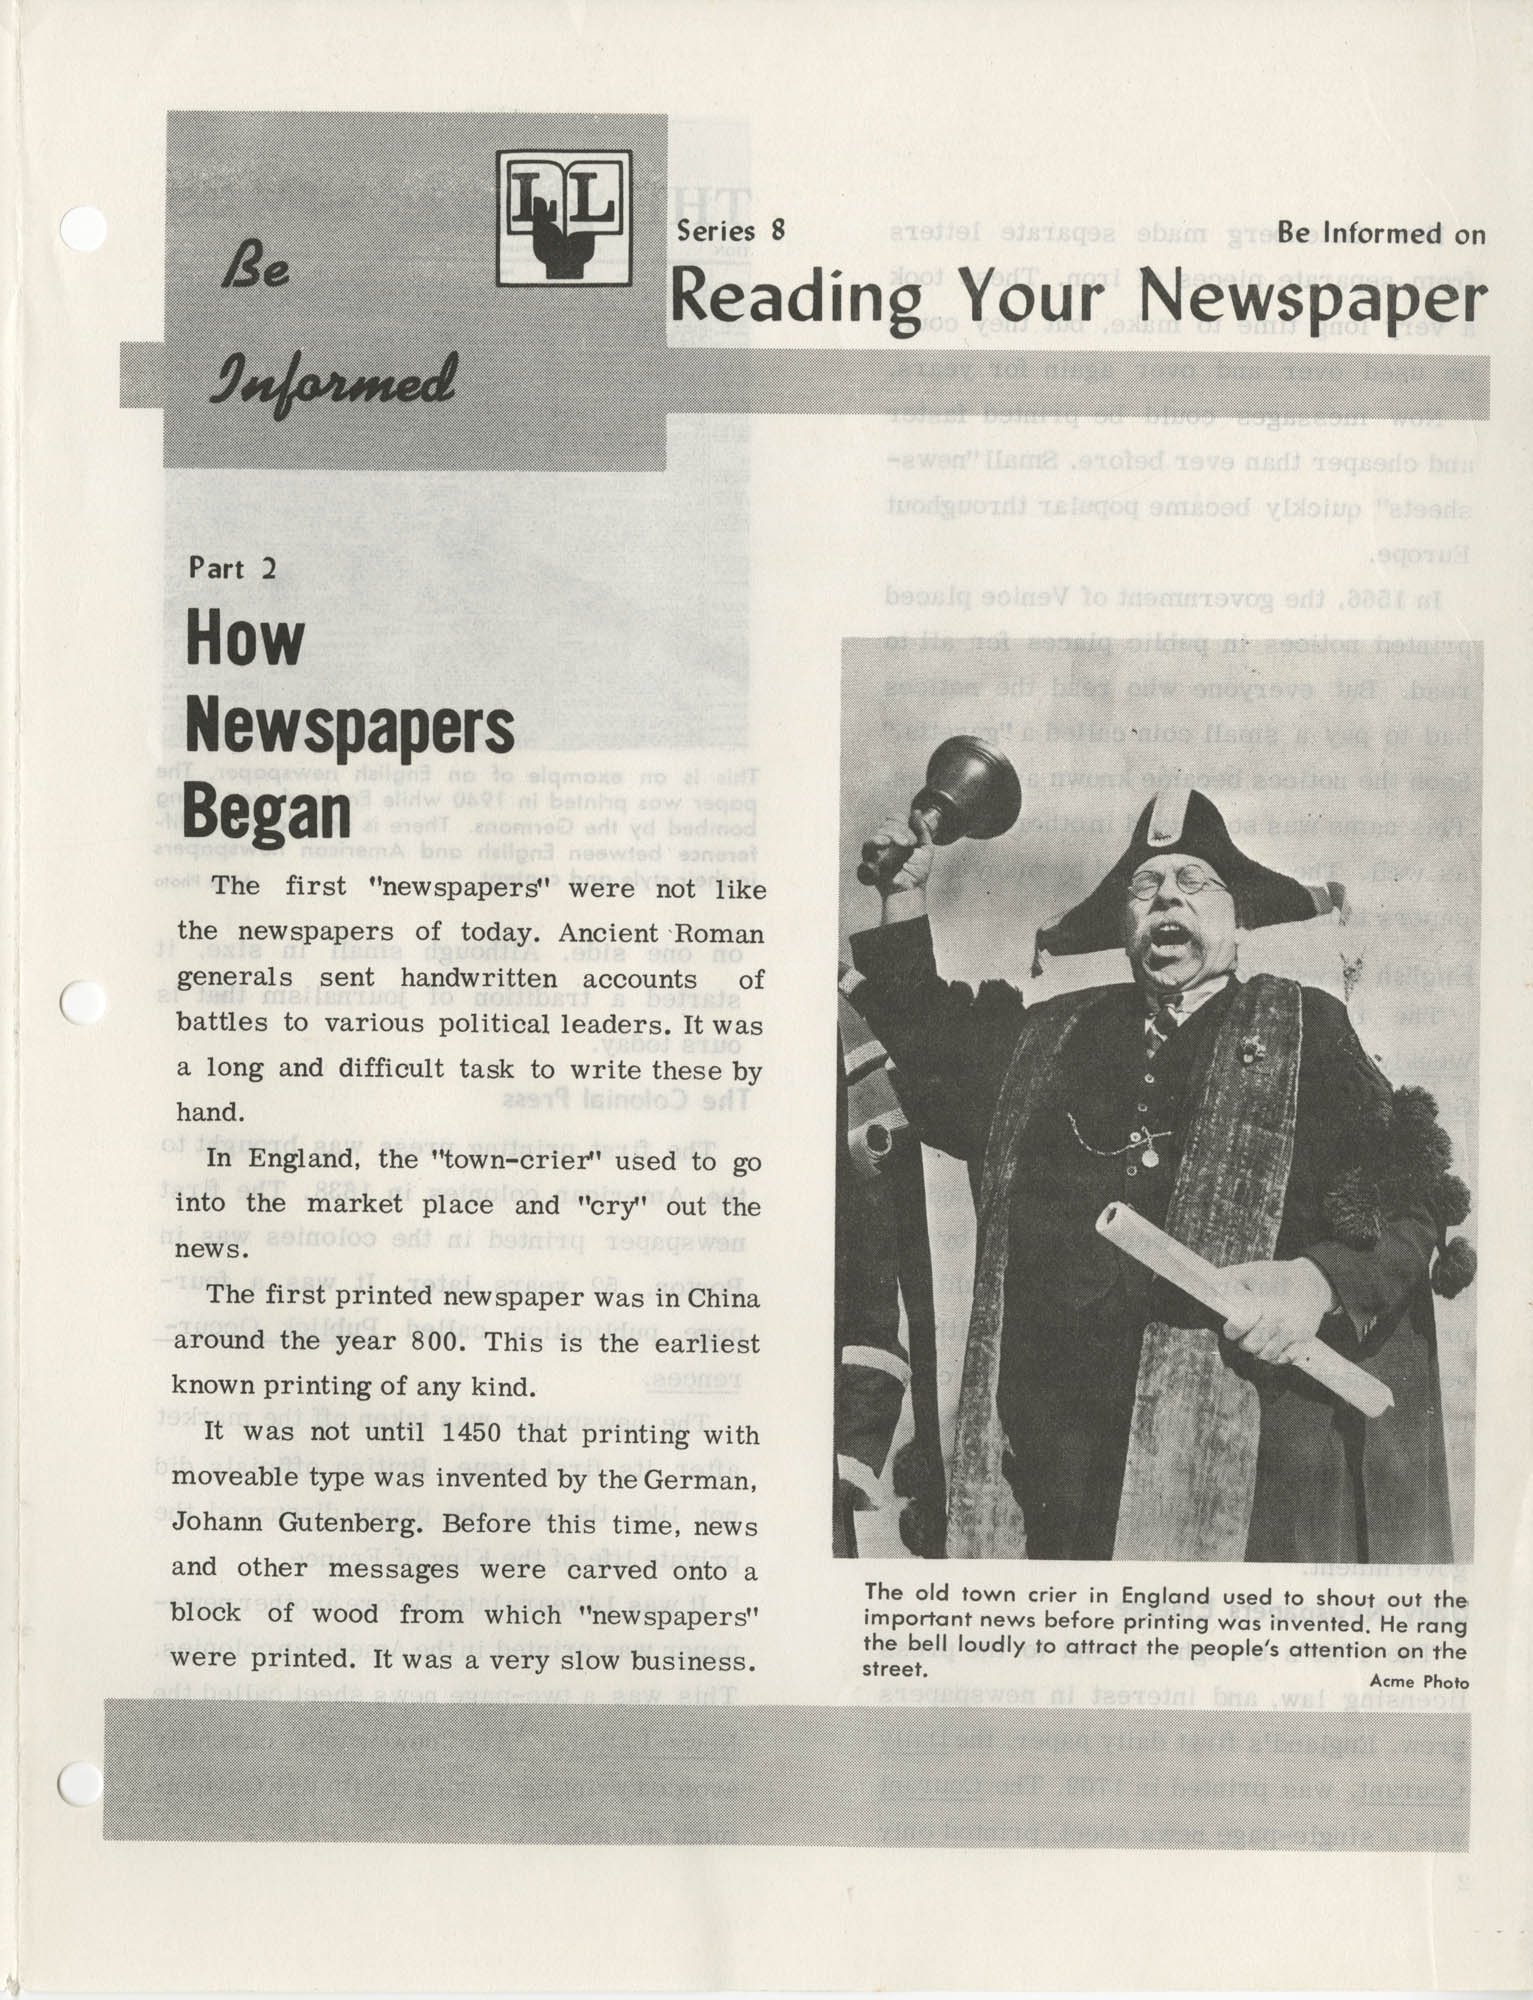 Be Informed, Reading Your Newspaper, Part 2